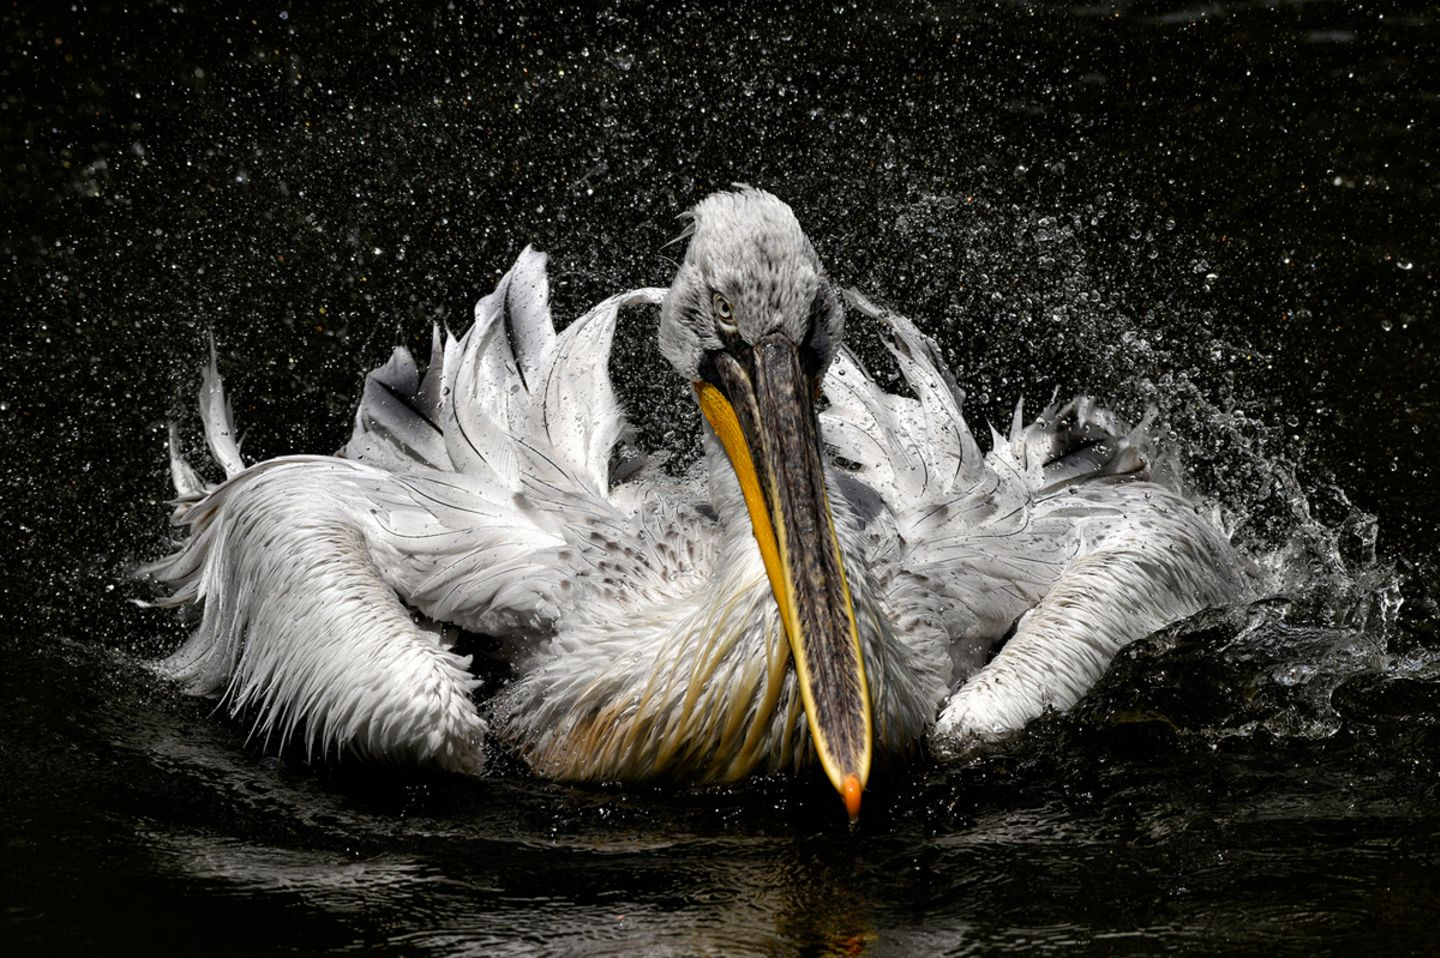 Jan Knot, Czech Republic, Commended, Open, Wildlife, 2017 Sony World Photography Awards